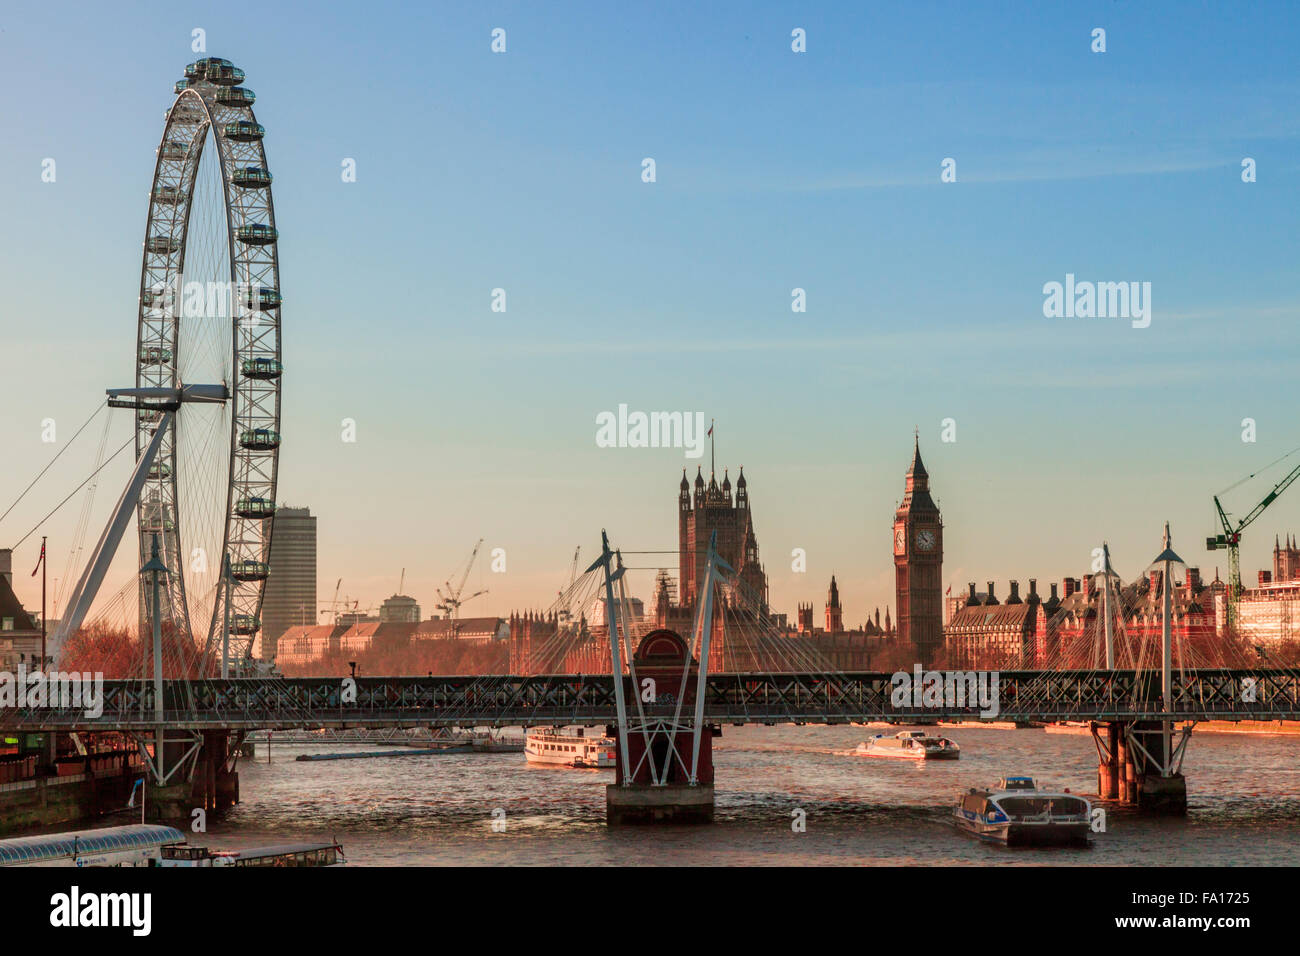 Looking along the River Thames towards the Houses of Parliament and the London Eye, London 2015 - Stock Image